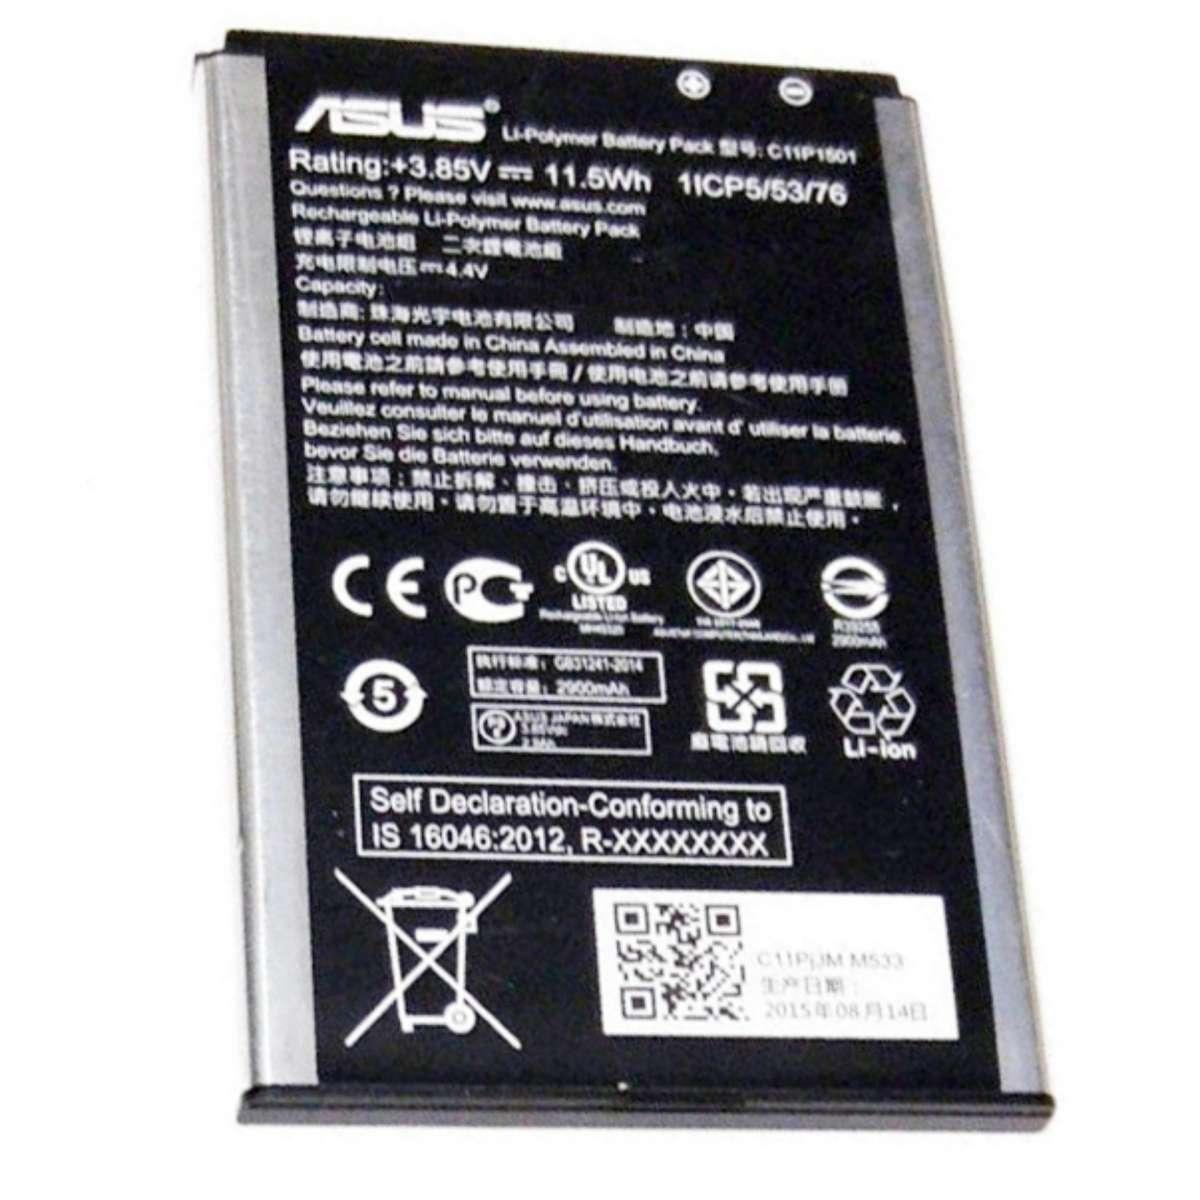 Original Asus Battery C11p1501 For Asus Zenfone 2 Laser 5.5 And Ze601kl/ze550kl Ze551kl Selfie Zd551kl Z00ud/ze600kl Z00md By Waroom  mobile Accessories Plaza.